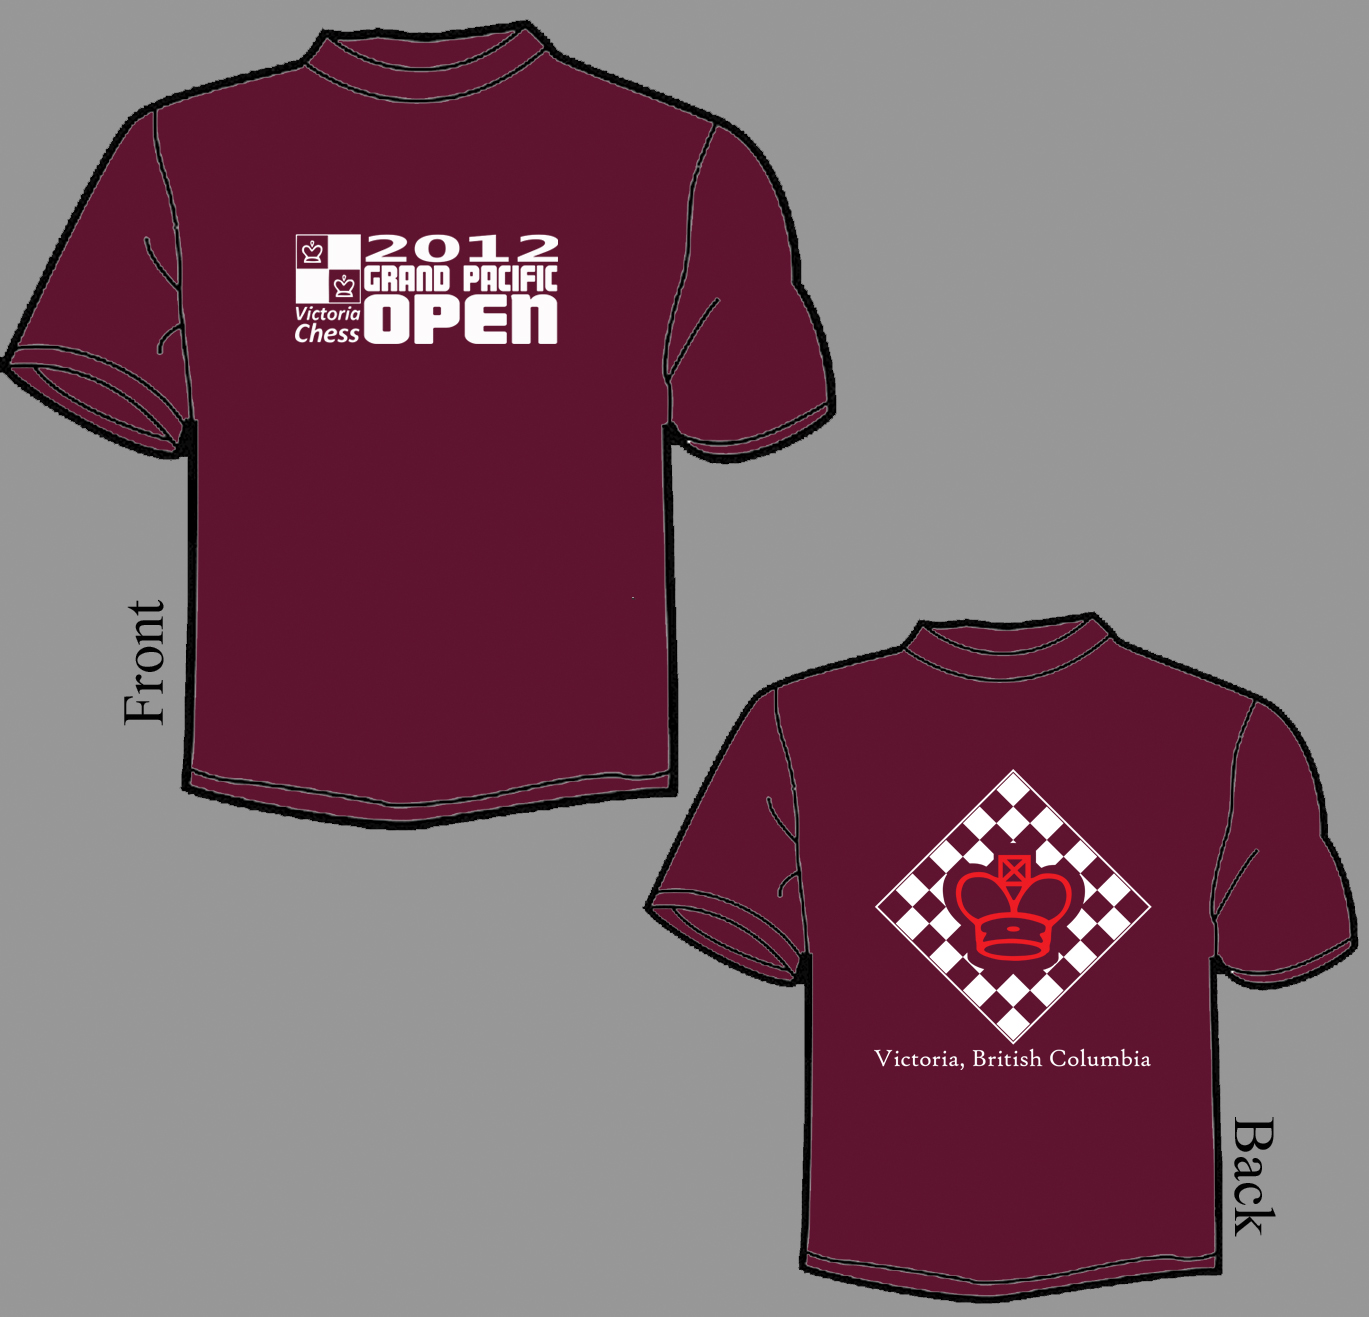 GPO T Shirt Front and Back